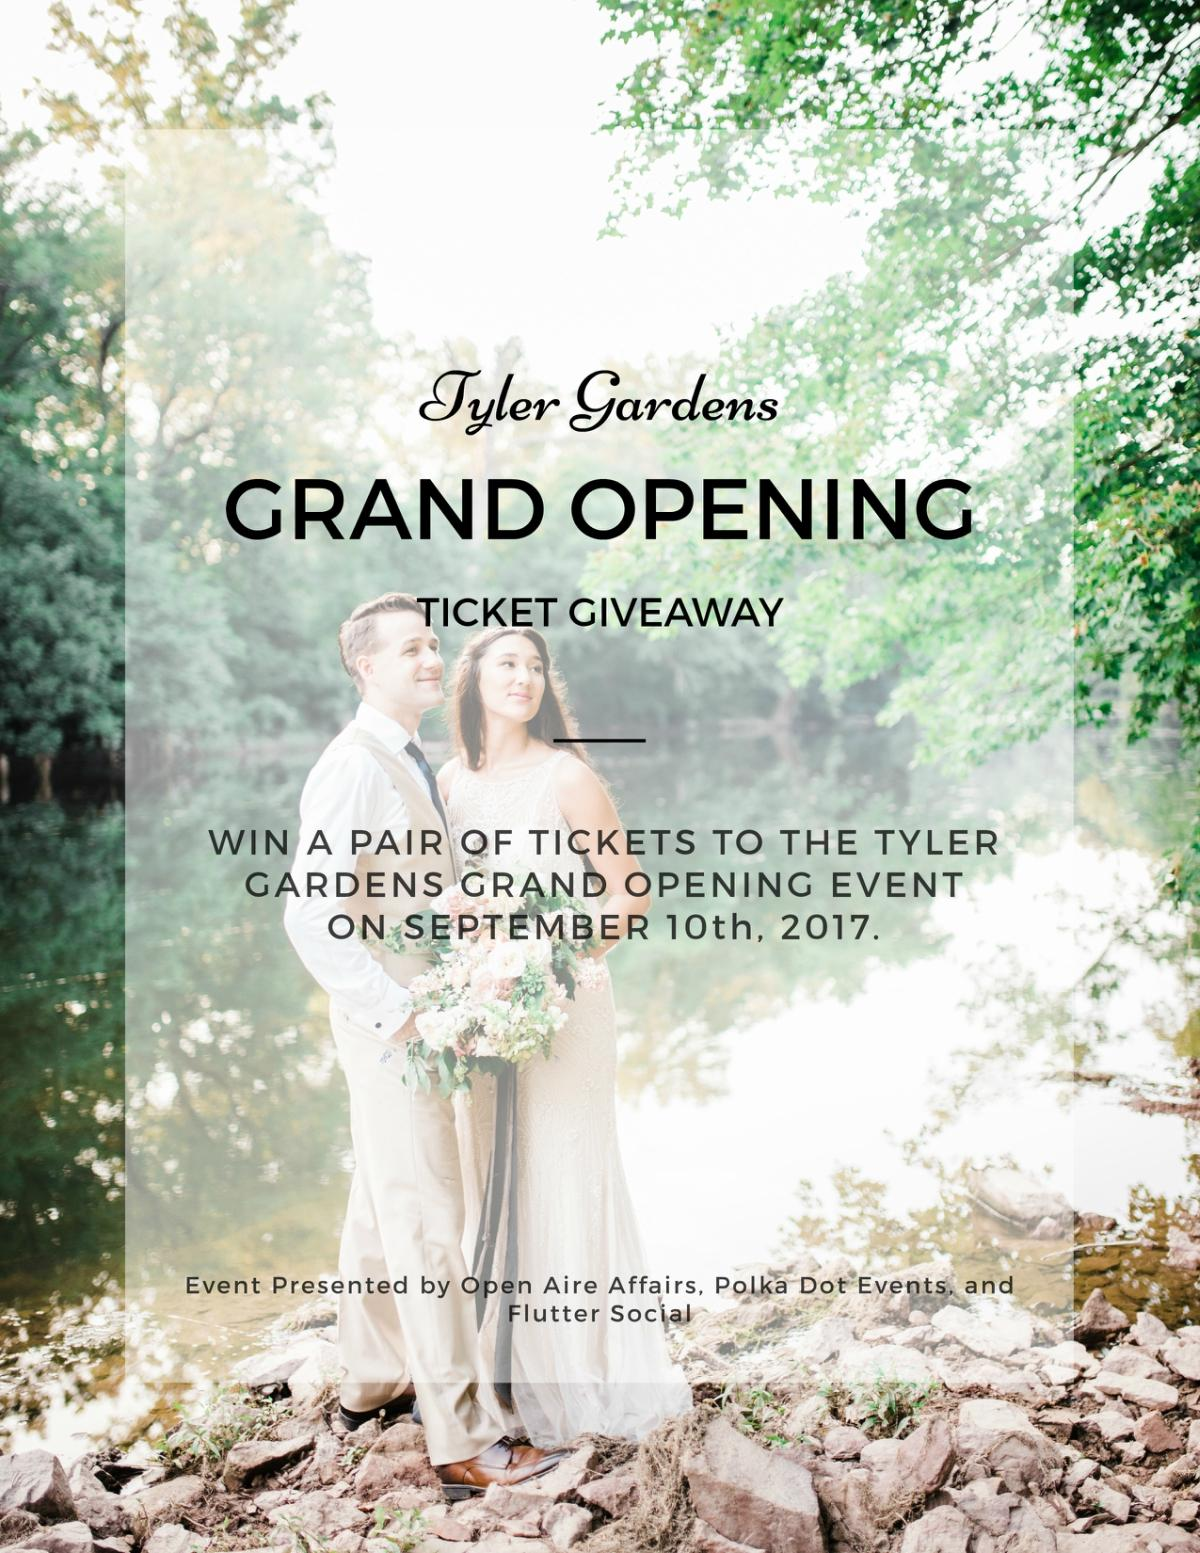 Tyler Gardens Grand Opening Ticket Giveaway Open Aire Affairs Polka Dot Events Flutter Social Du Soleil Photographie